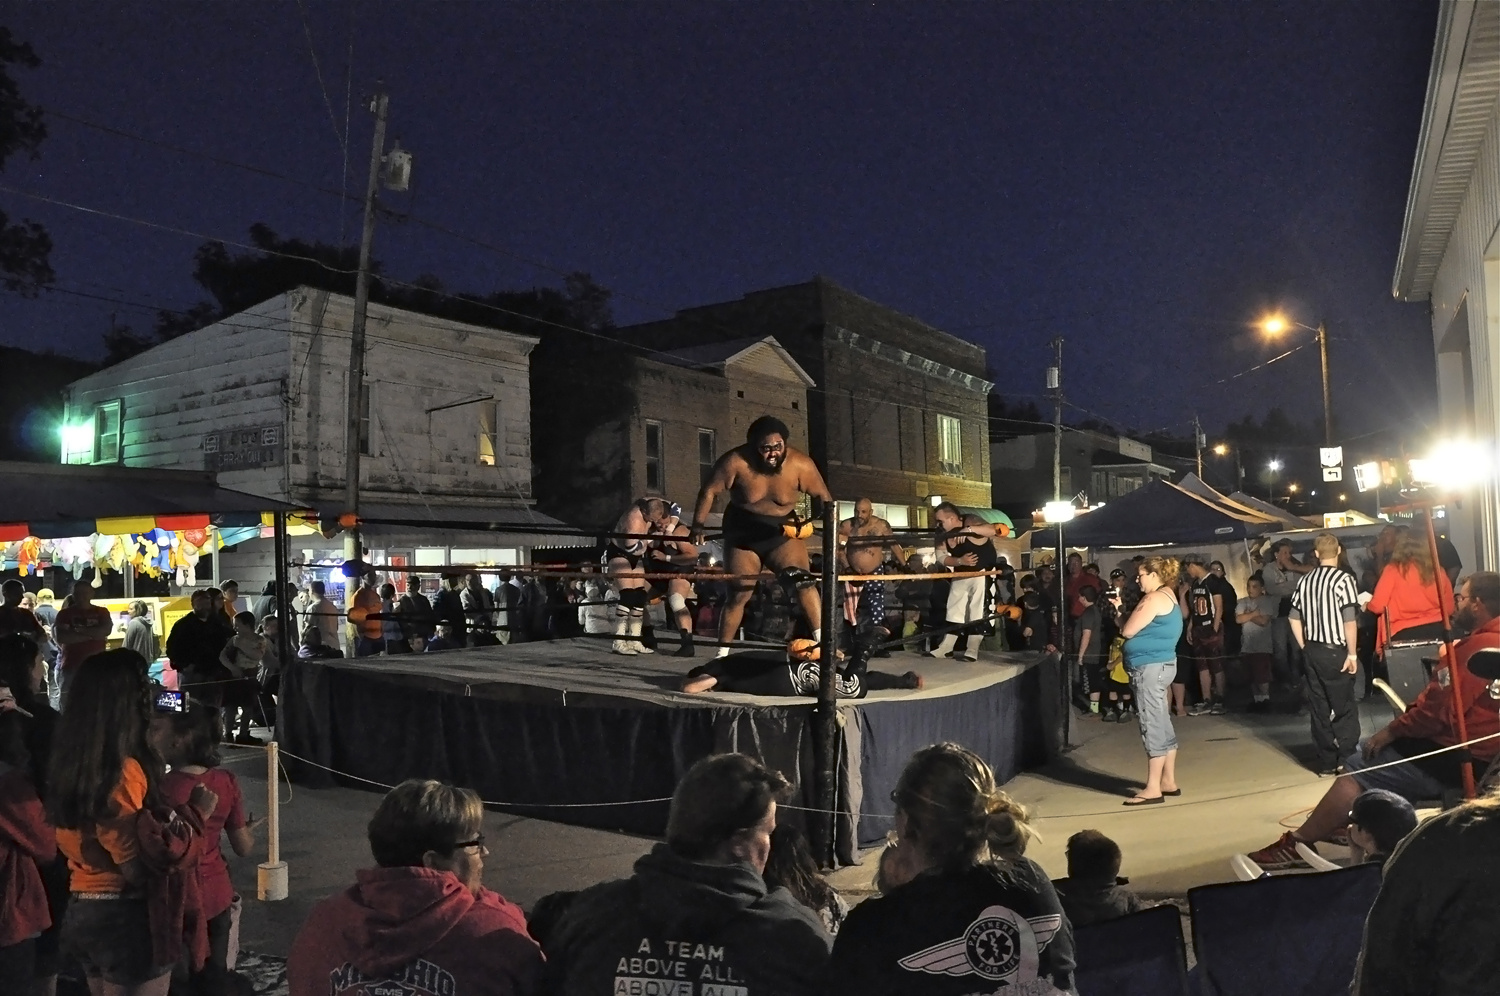 Dennis Savage . May 23, 2014. Tag Team wrestling during the Moonshine Festival, Perry County, Ohio.